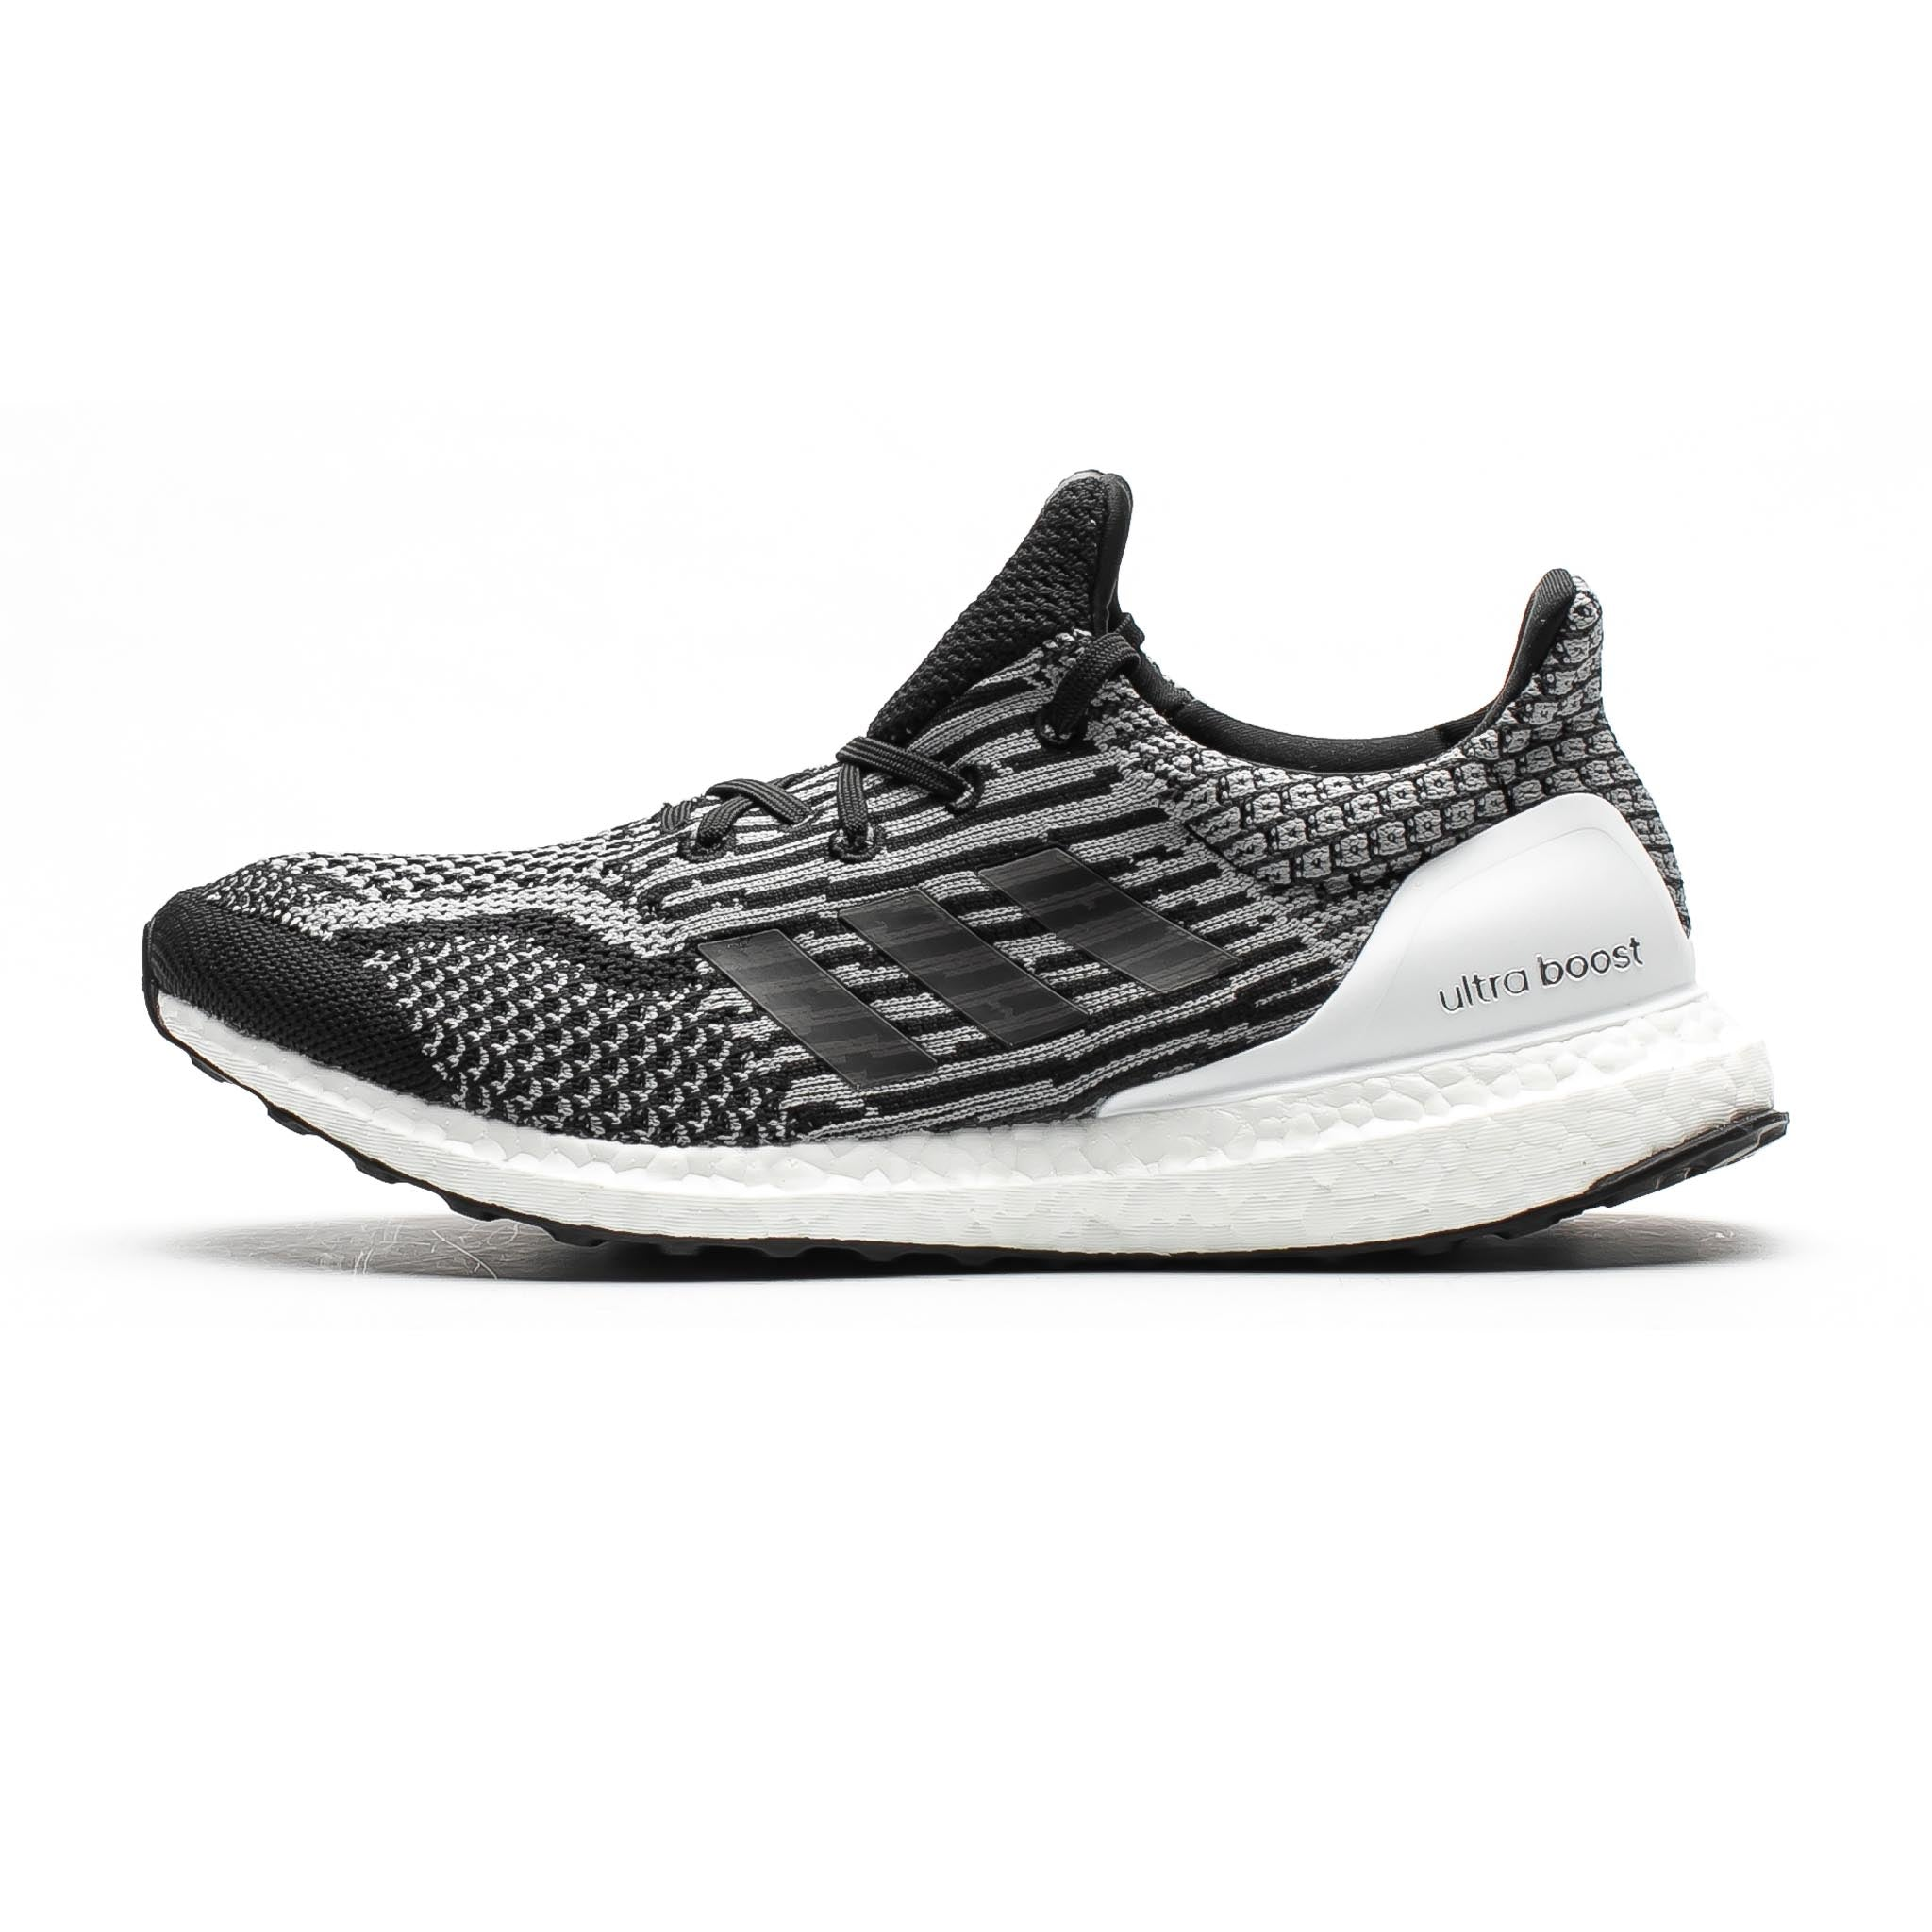 ADIDAS Ultraboost 5.0 Uncaged DNA 'Core Black/Grey'